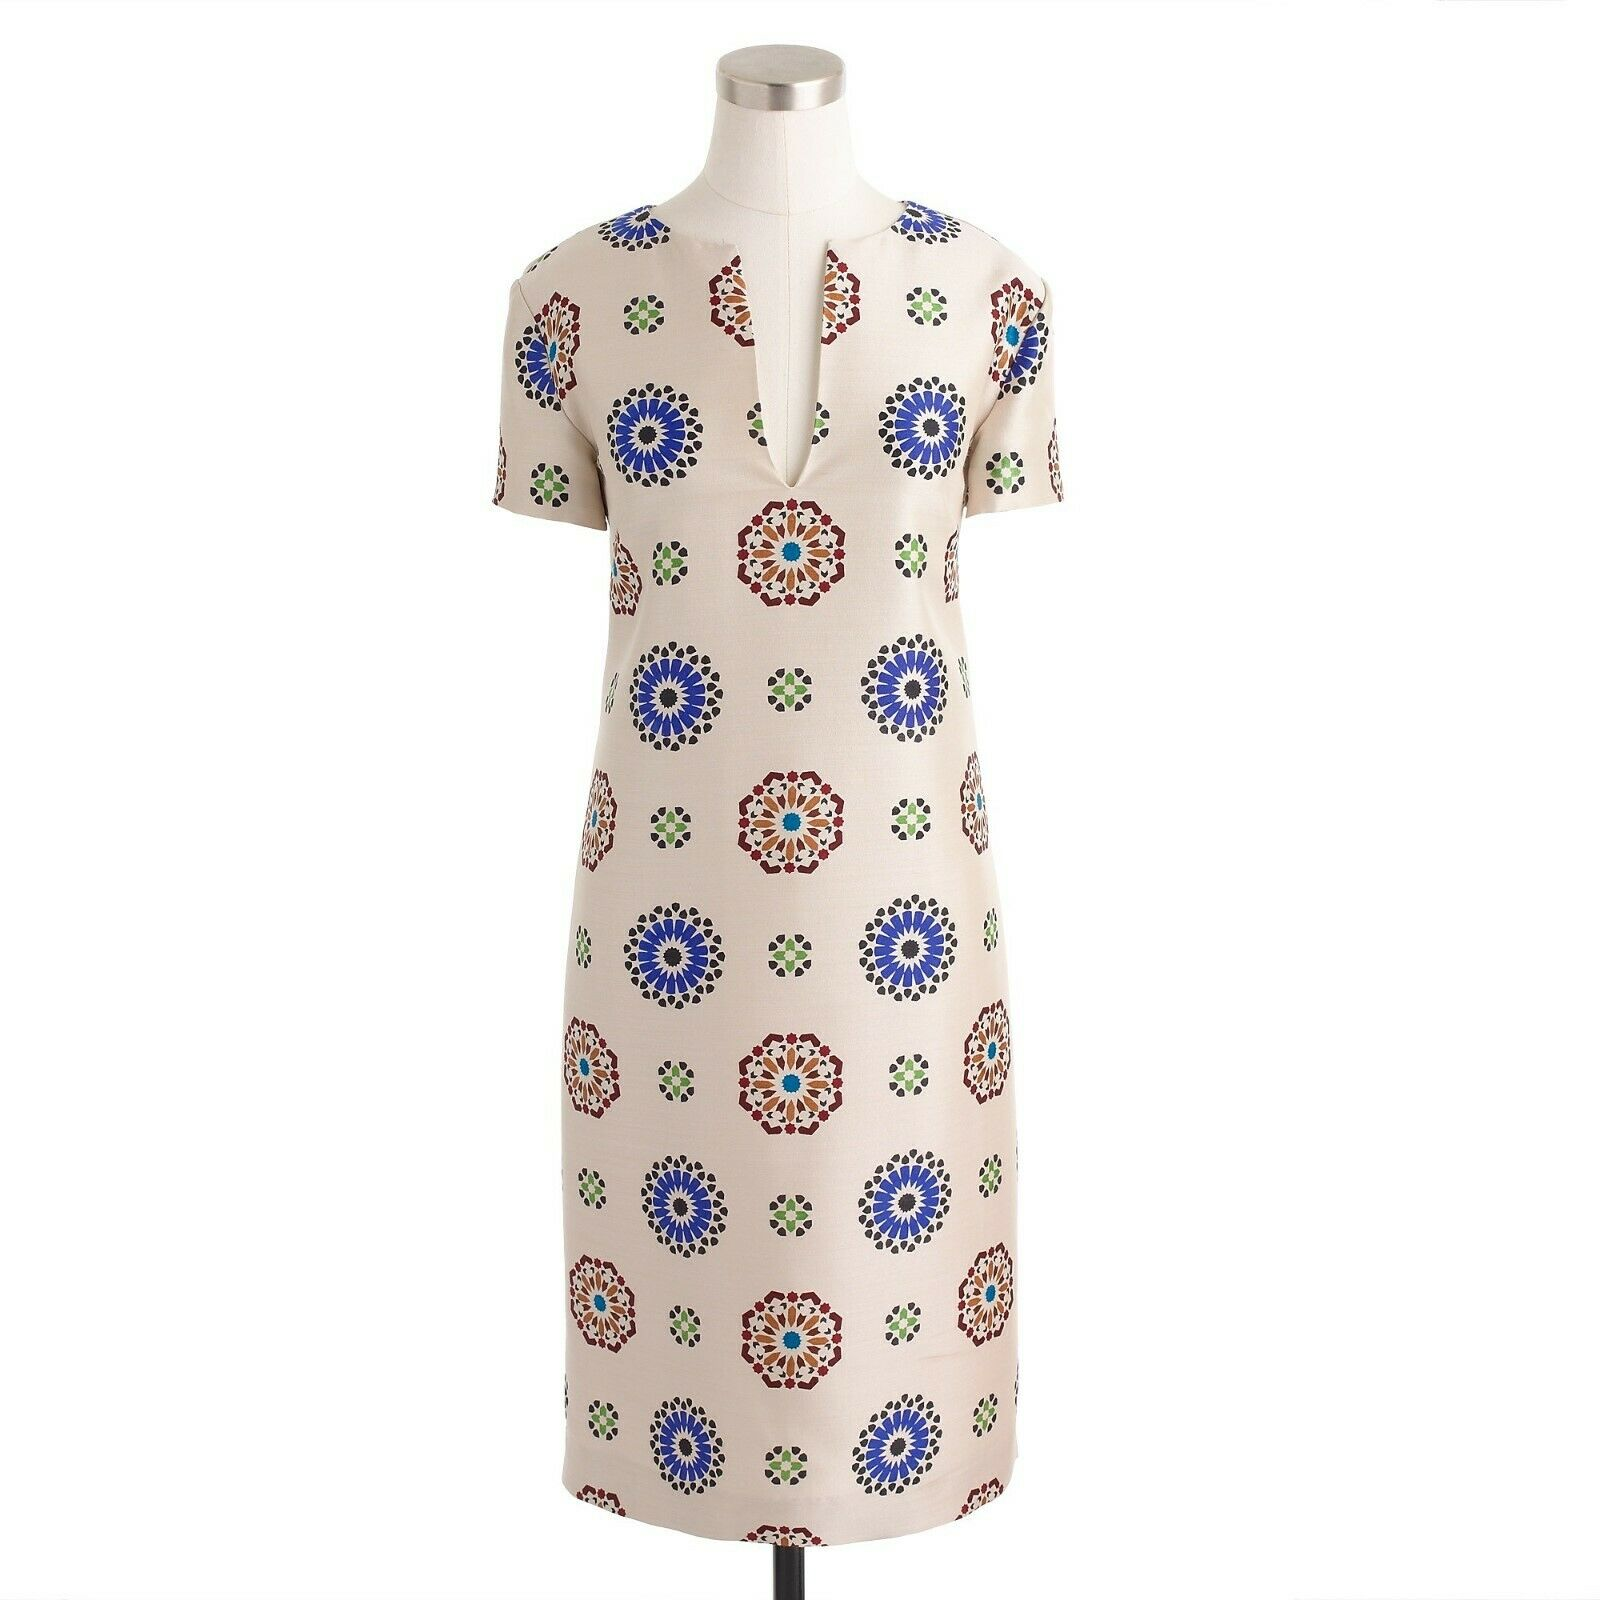 J.Crew Collection Wool Silk Dress in Tile Medallion Print Size 2